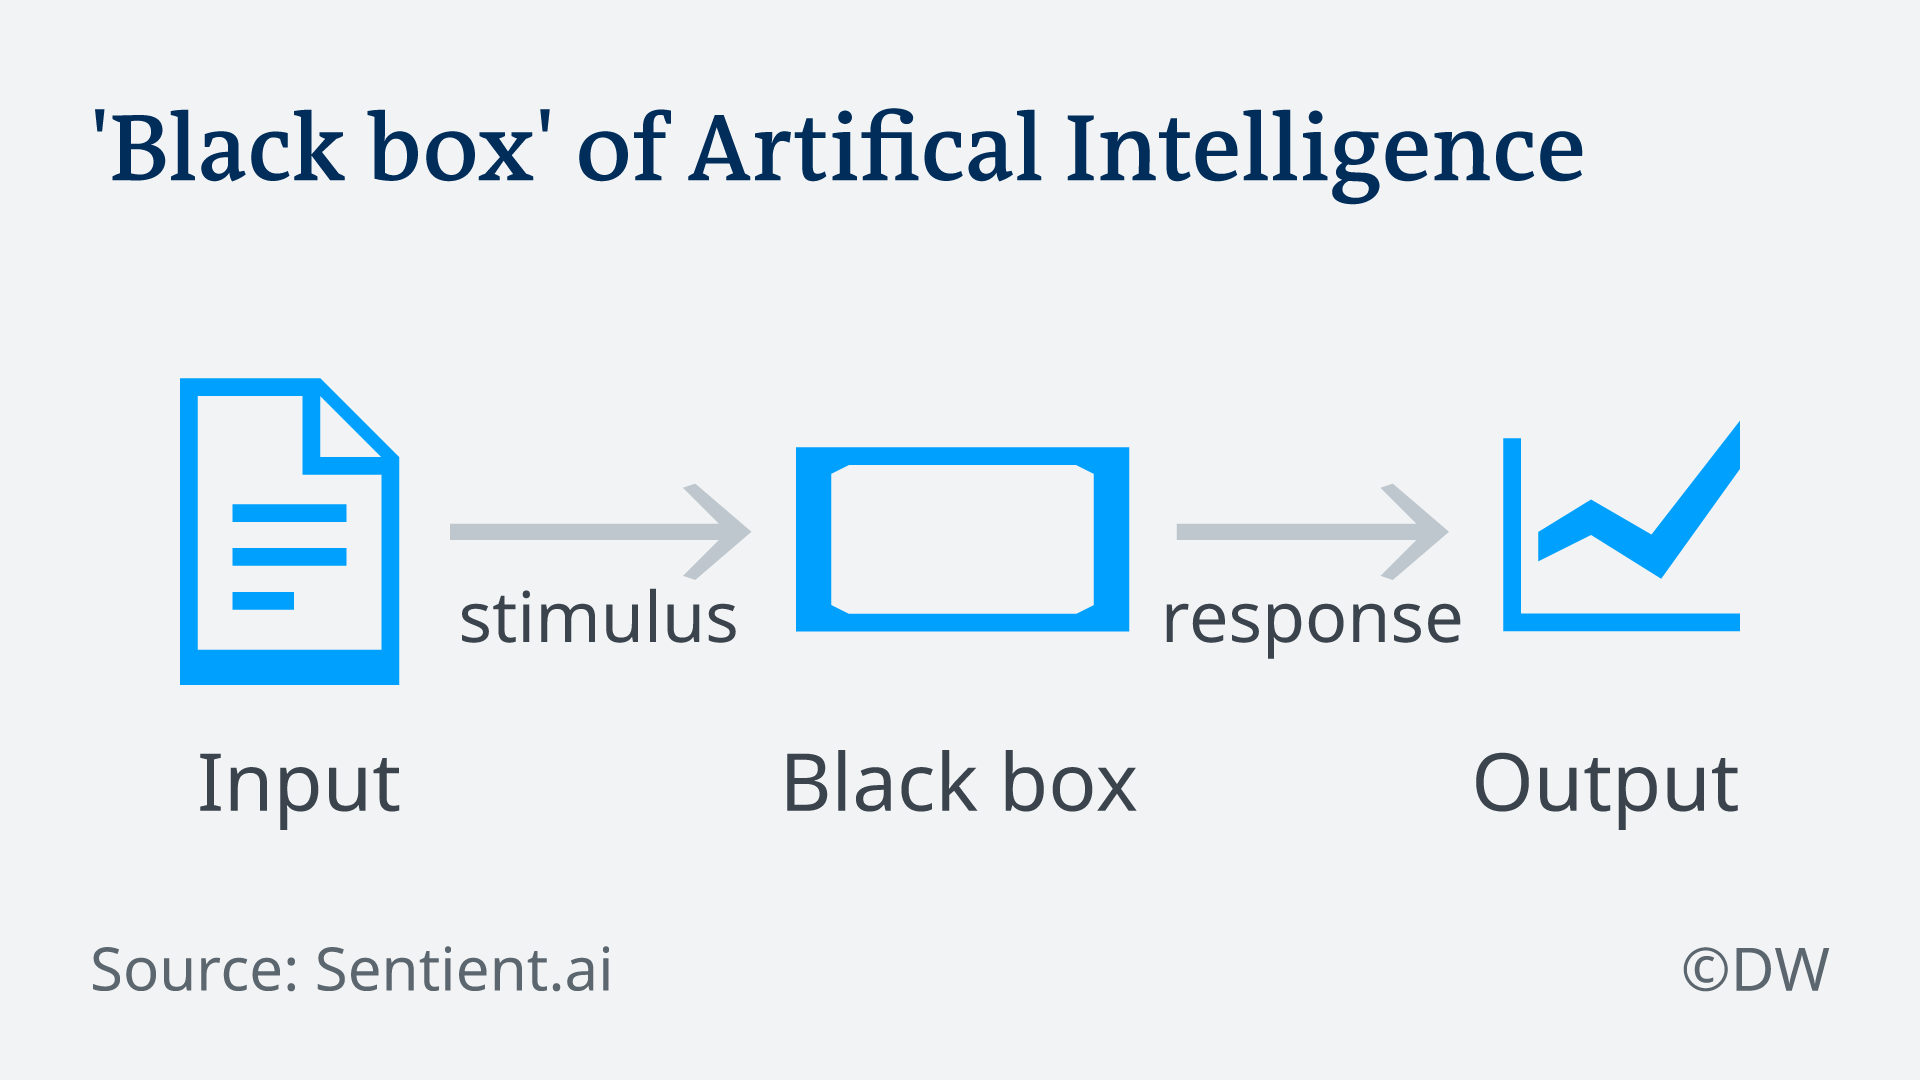 Infographic illustrating how black box AI works